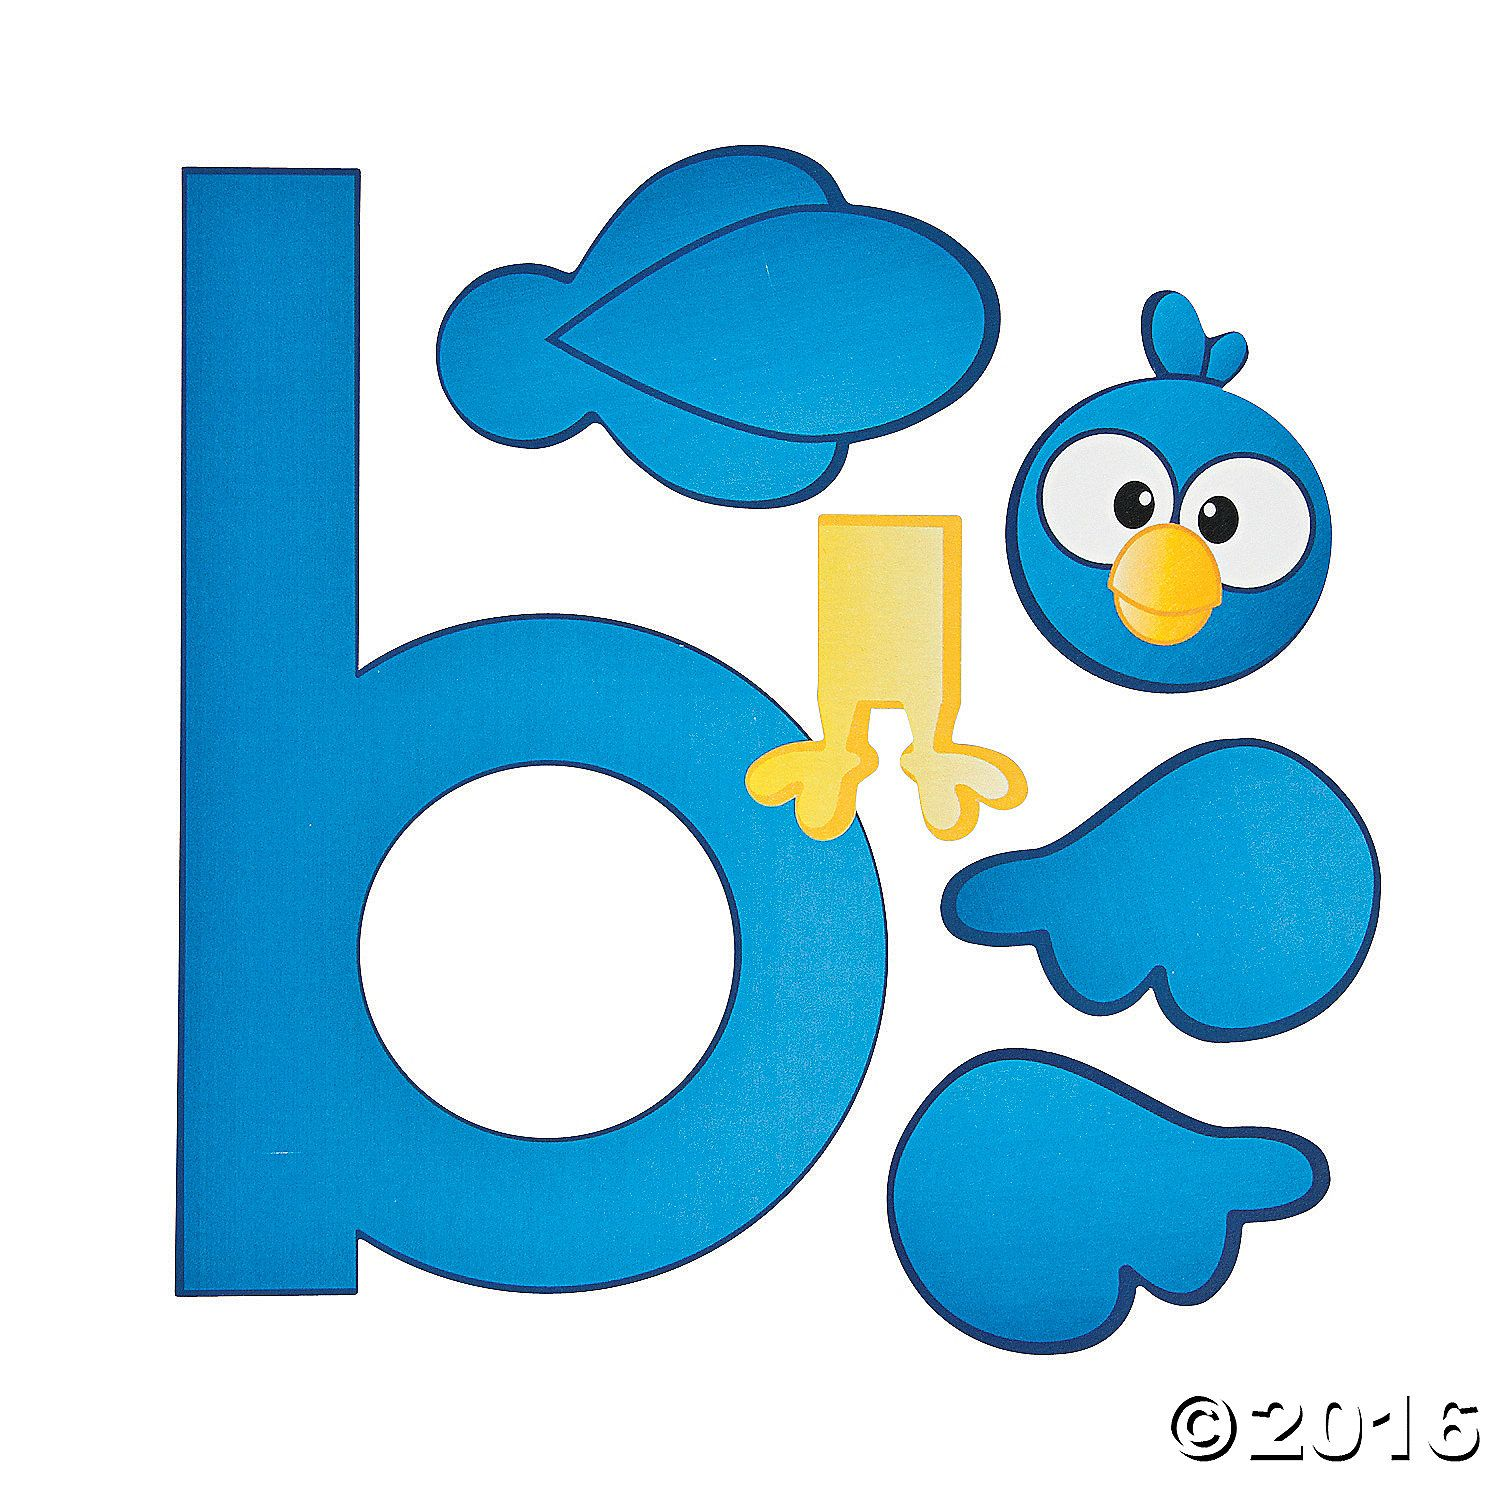 B Clipart Bird Craft B Bird Craft Transparent Free For Download On